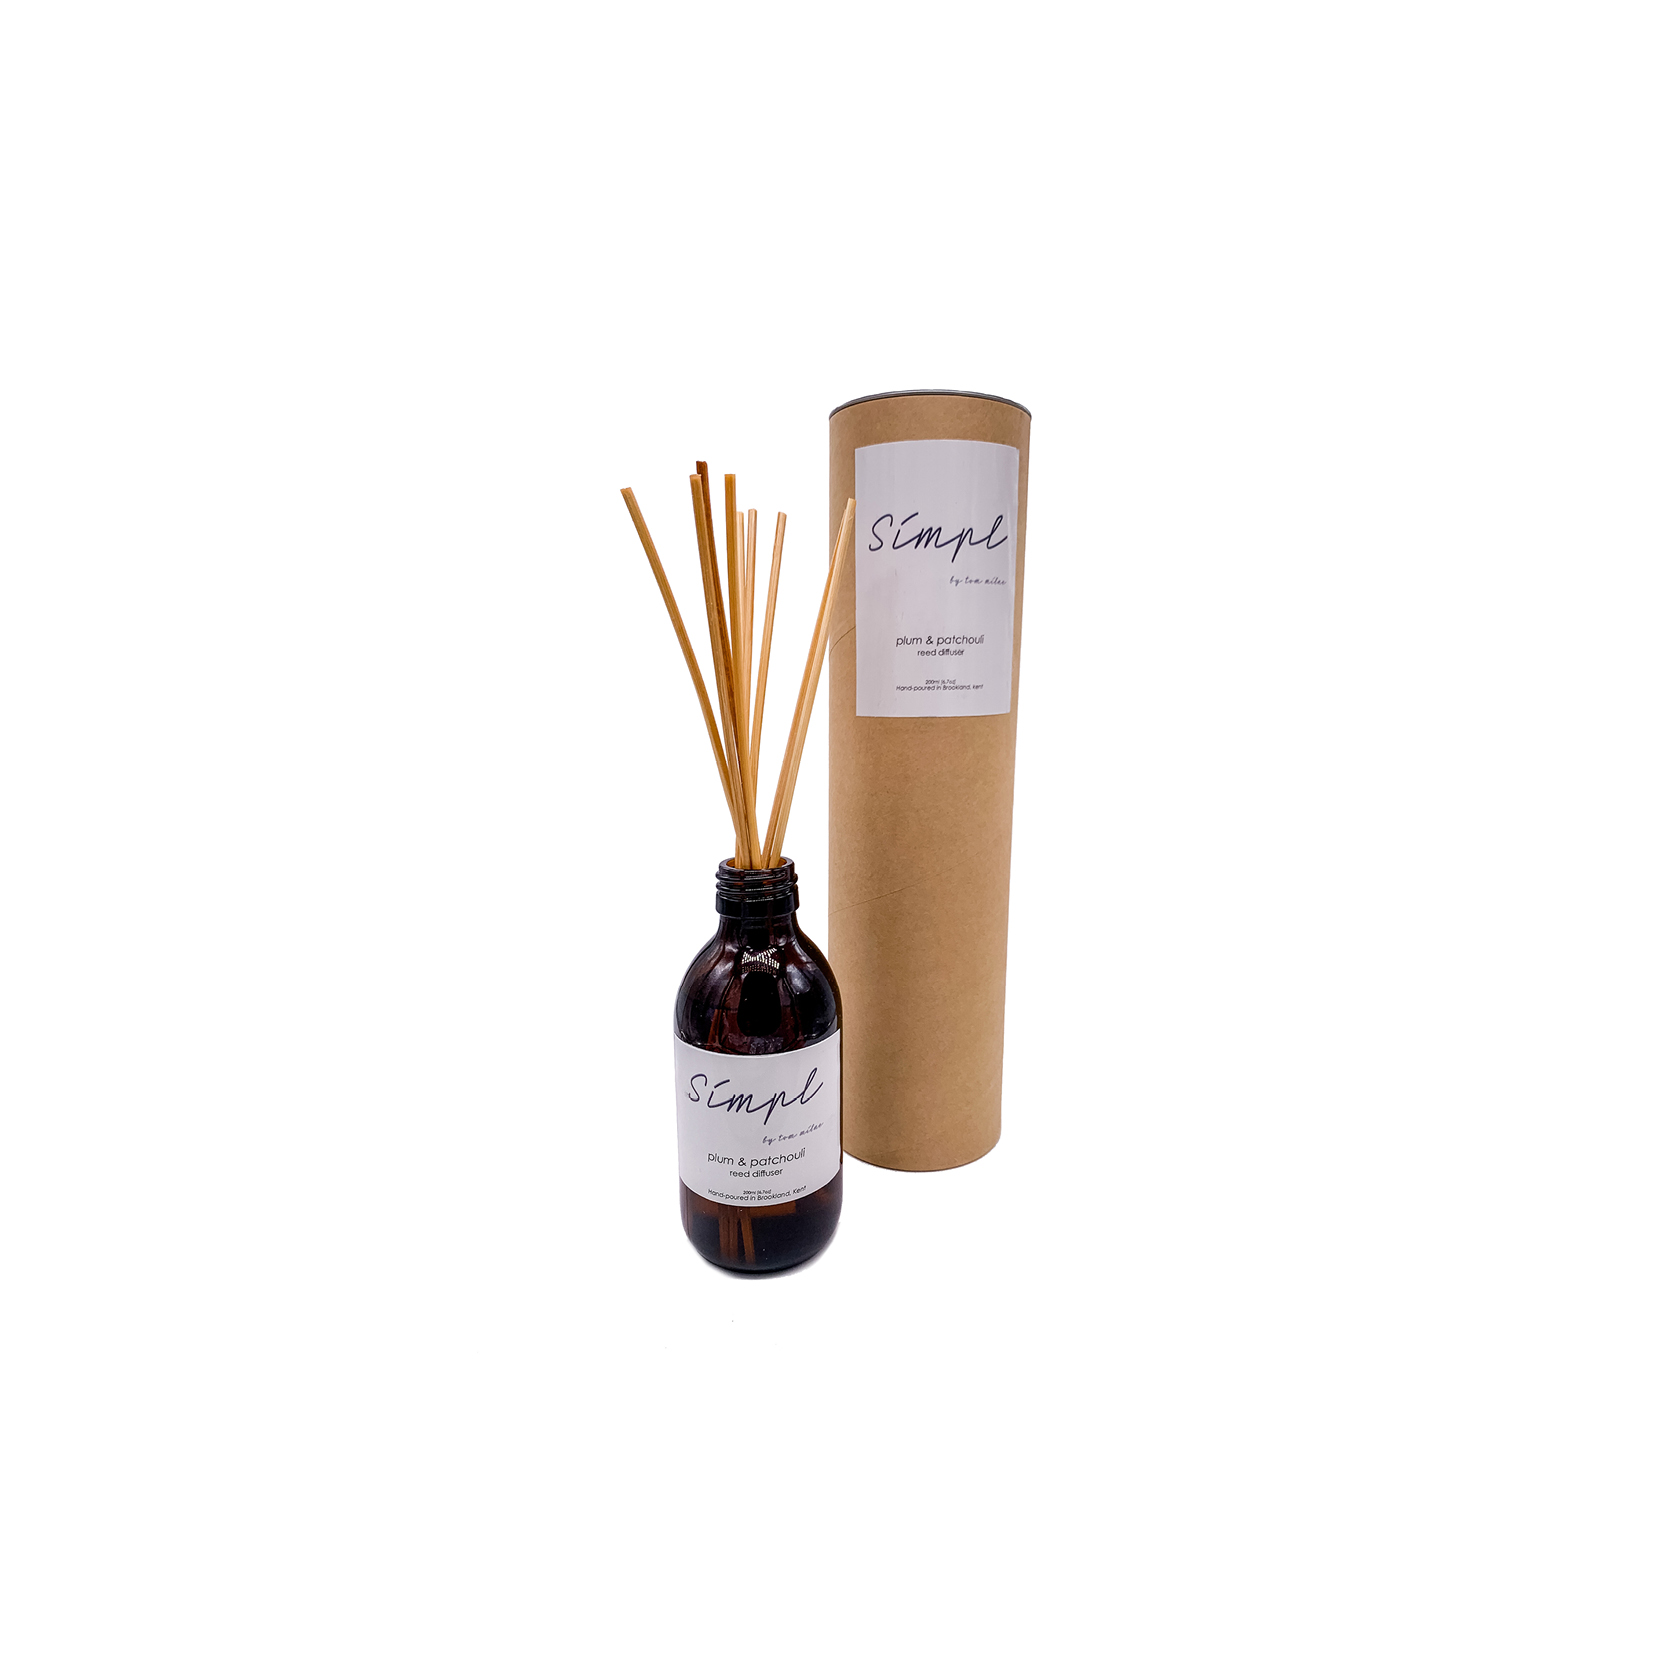 Simpl | Tom Milne - Plum and Patchouli Reed Diffuser